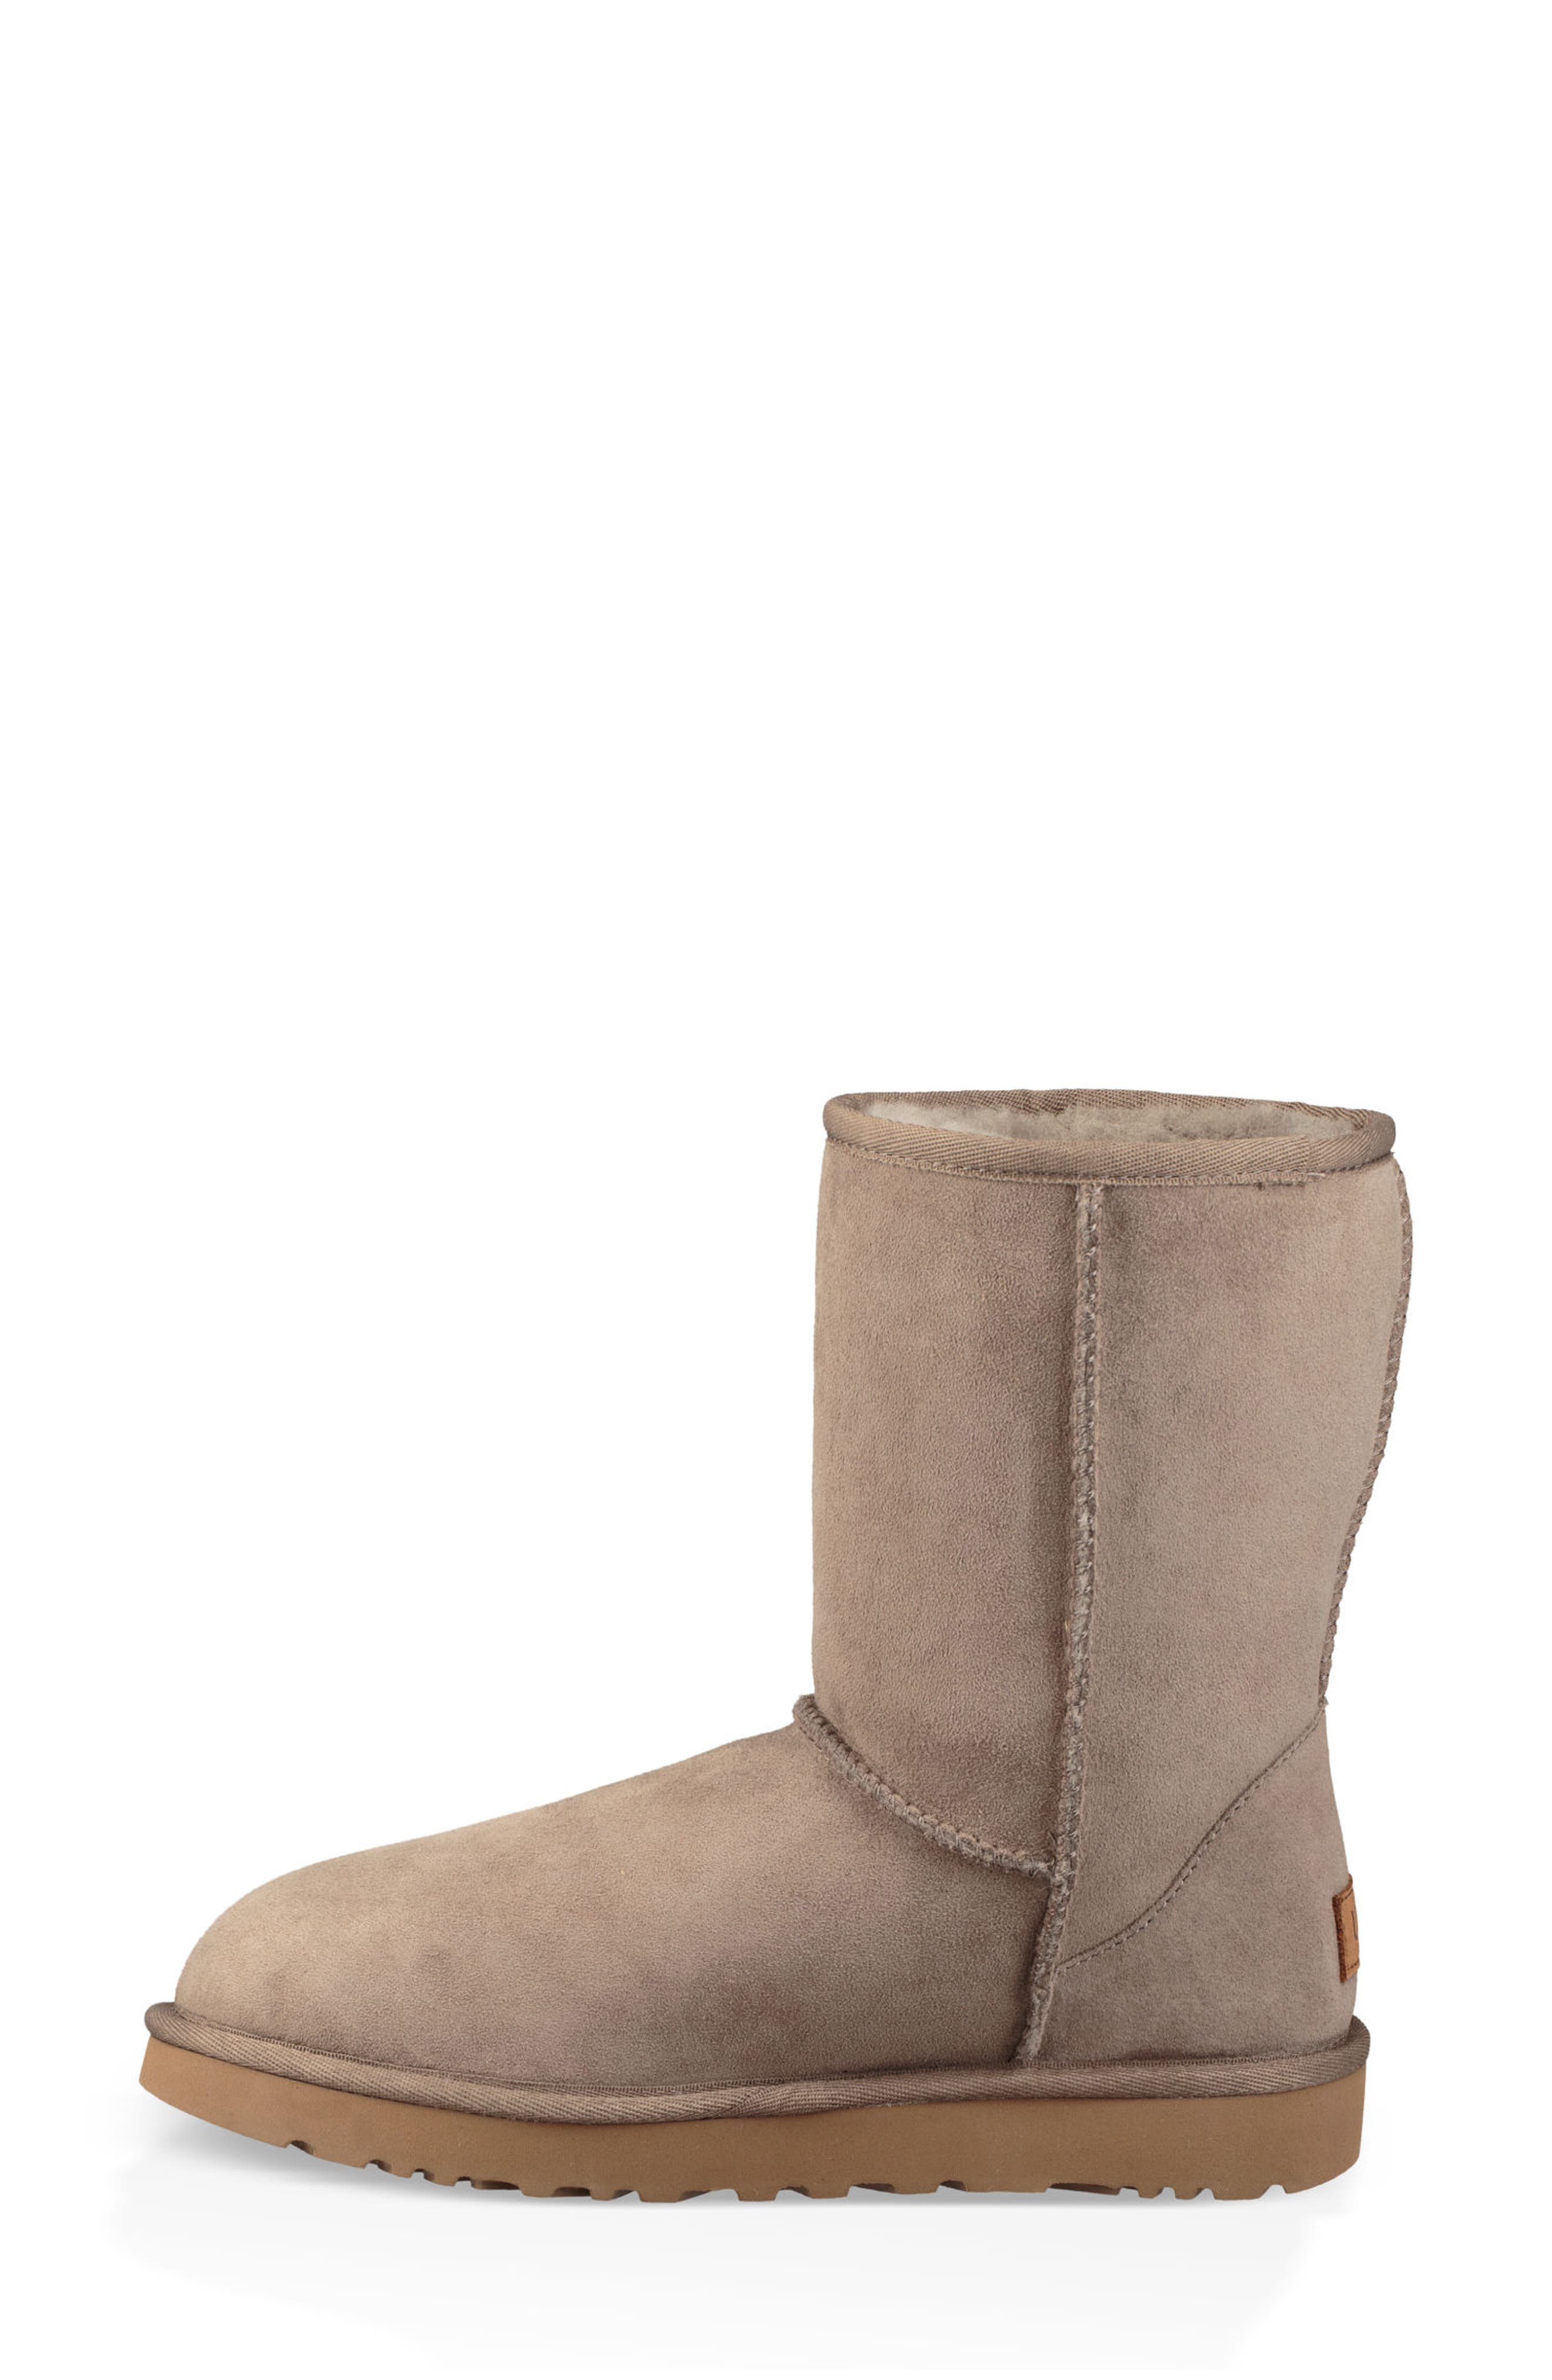 'Classic II' Genuine Shearling Lined Short Boot,                             Alternate thumbnail 7, color,                             BRINDLE SUEDE